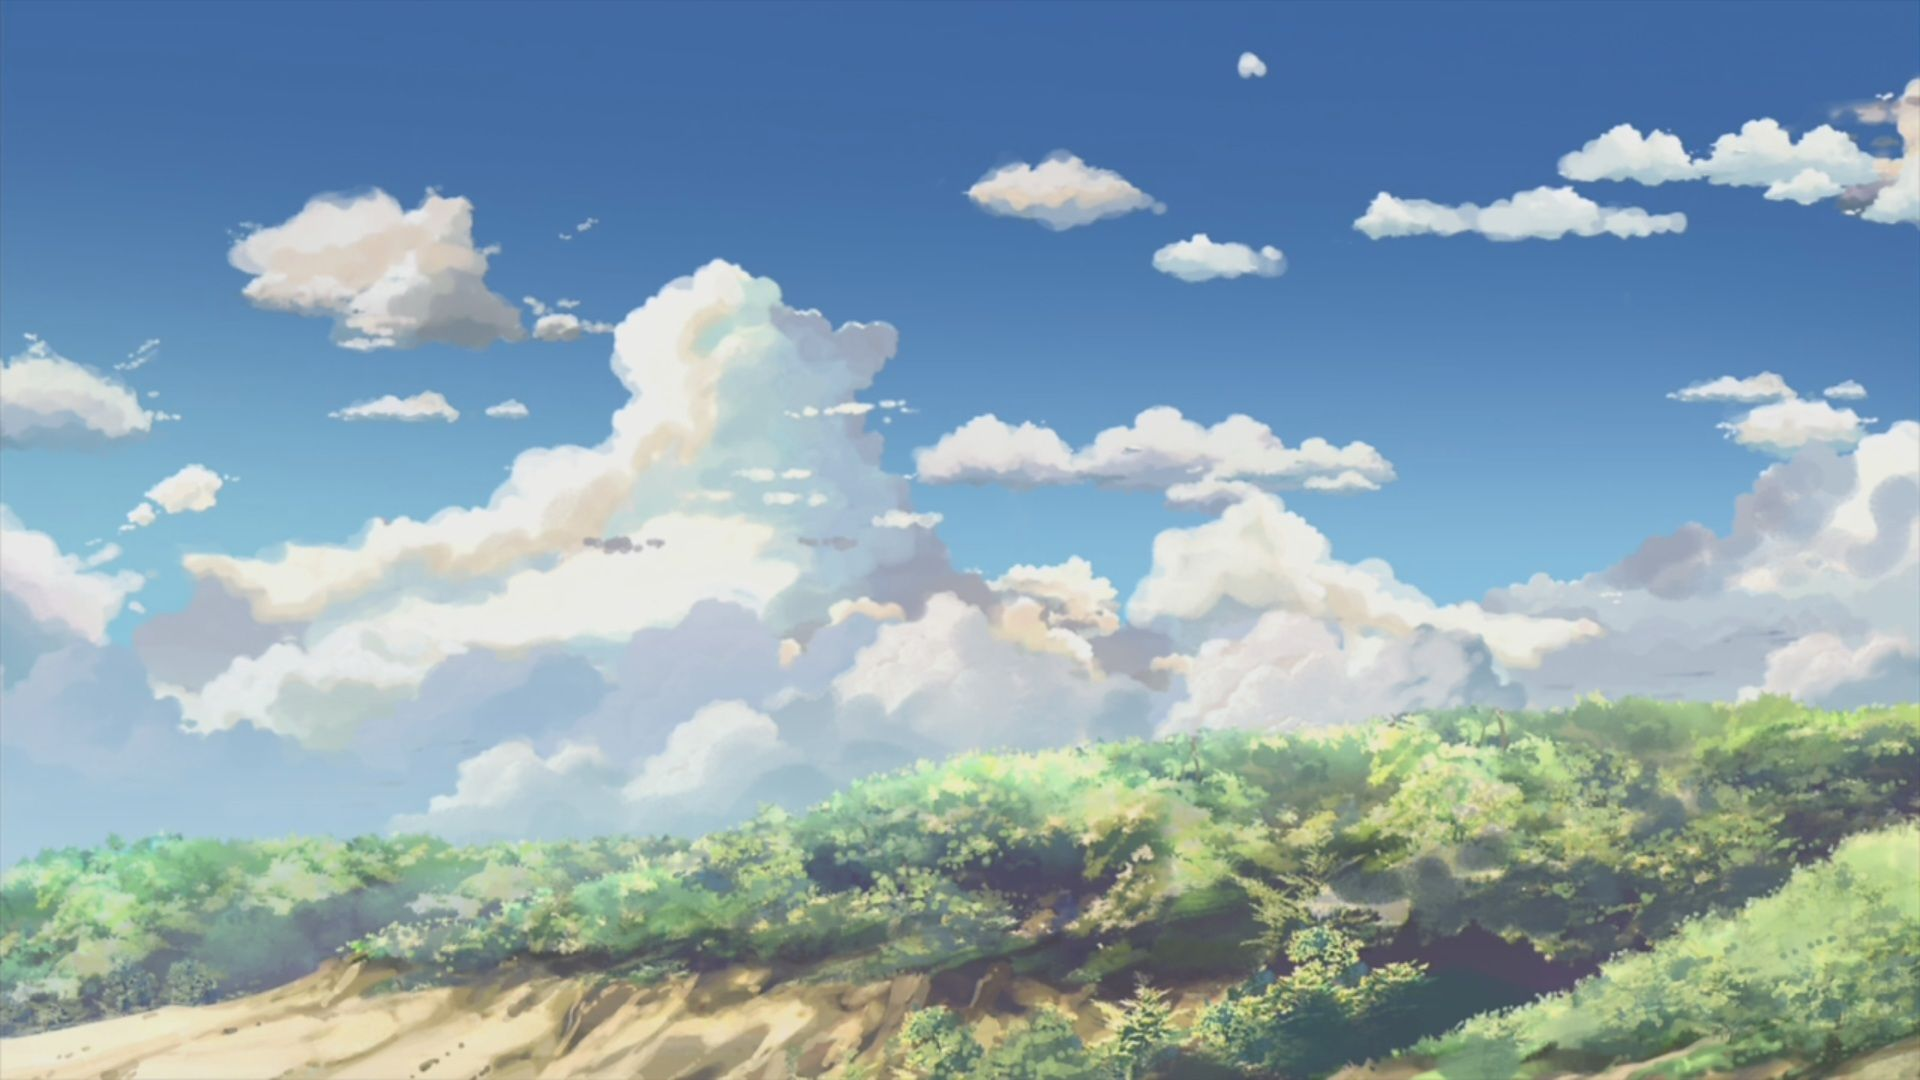 Anime Scenery Wallpaper 1920X1080 Hd Cool 7 HD Wallpapers